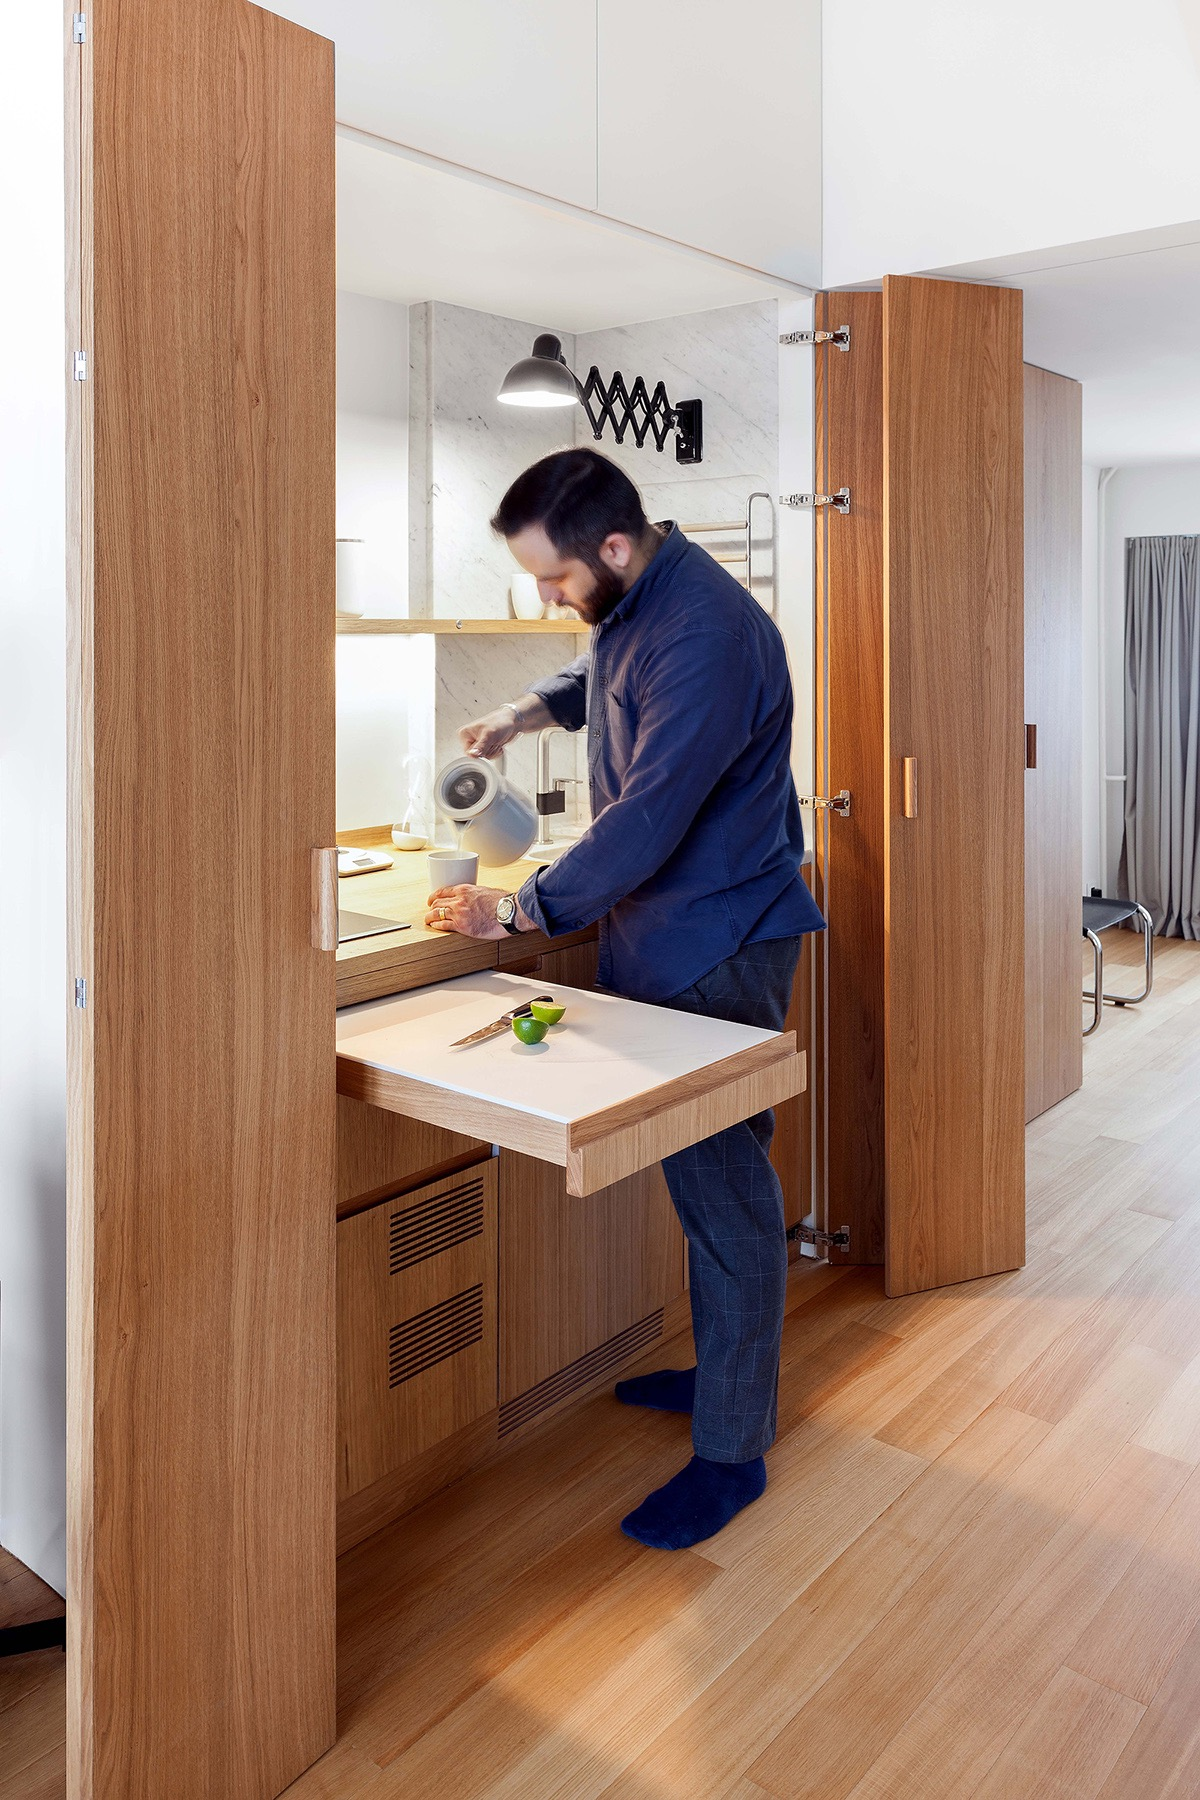 Compact Multifunctional Flat With Zoning Ideas images 11